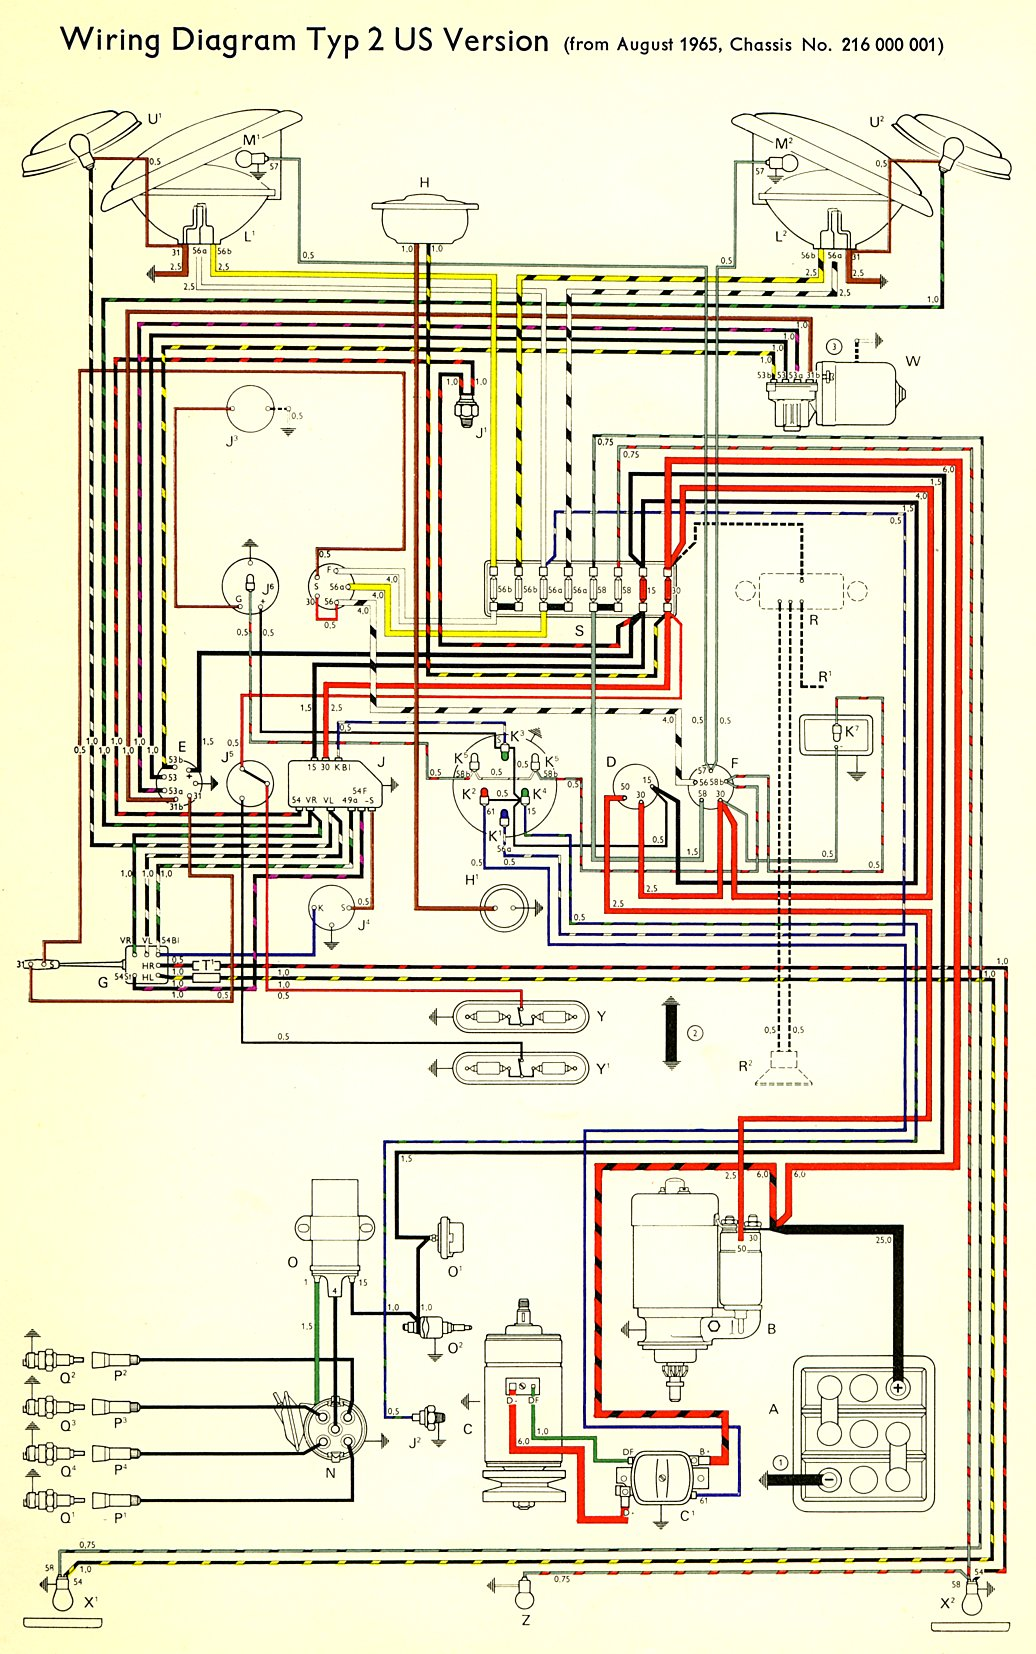 bus_66_USA 1966 bus wiring diagram (usa) thegoldenbug com Volkswagen Type 2 Wiring Harness at alyssarenee.co